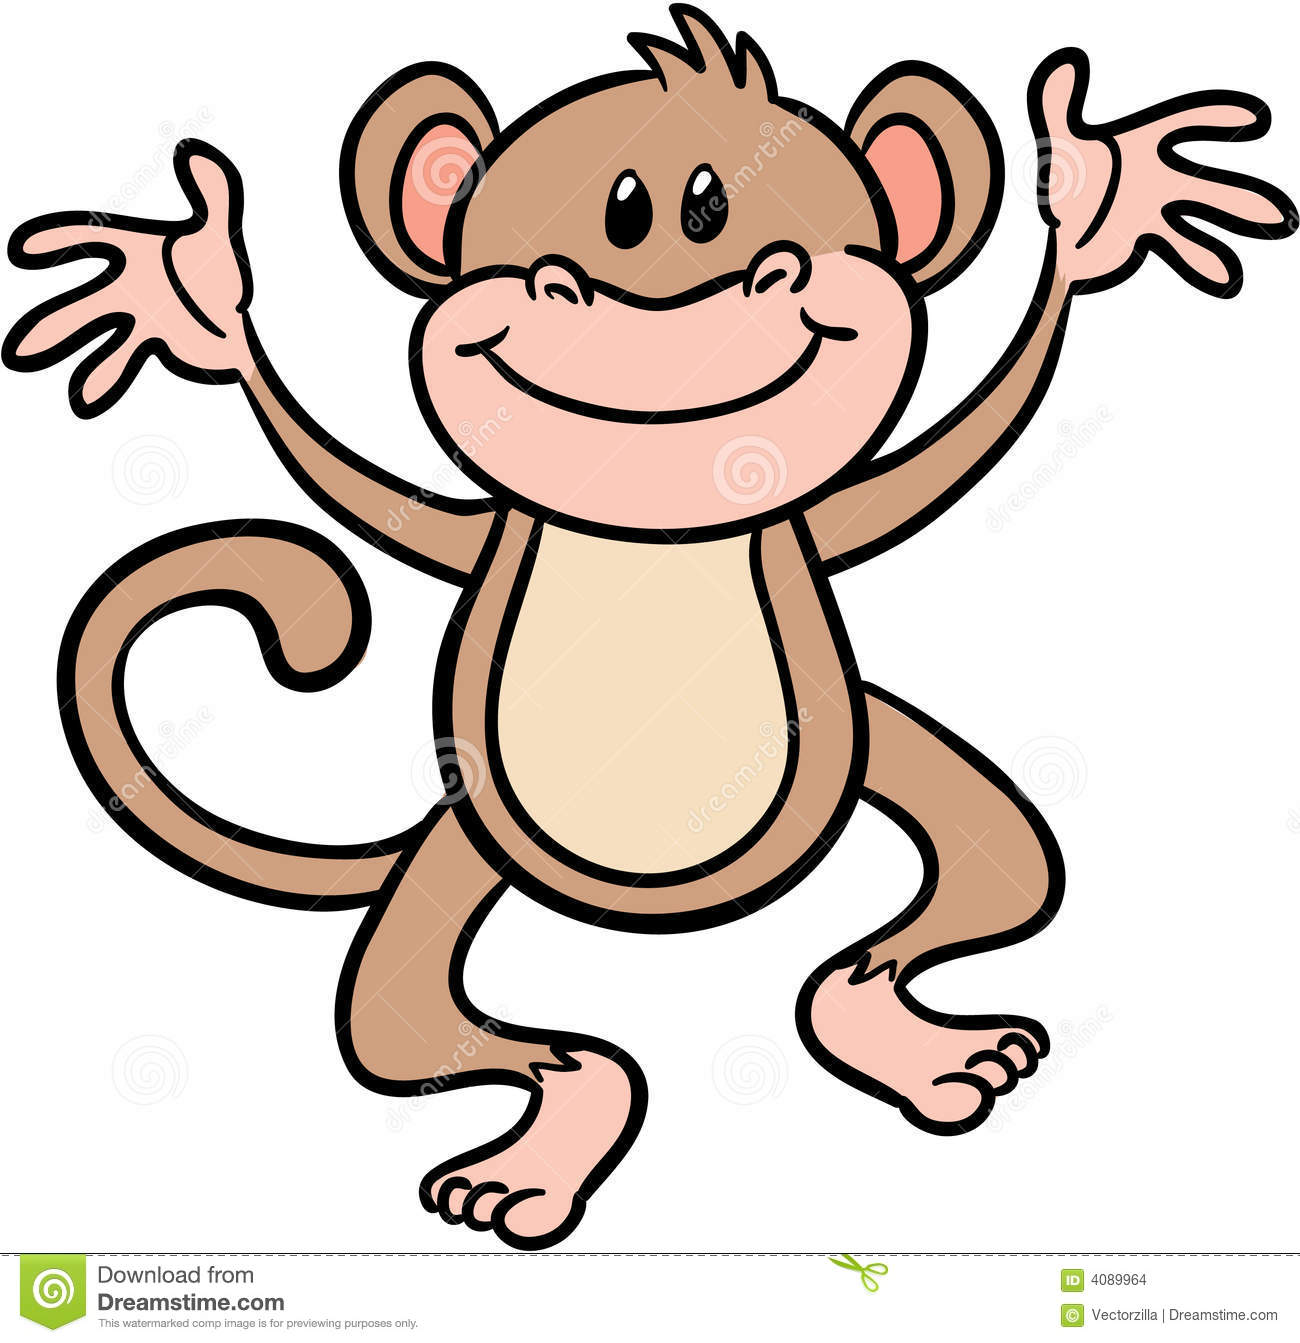 Cute Monkey Vector Illustration Stock Images - Image: 4089964